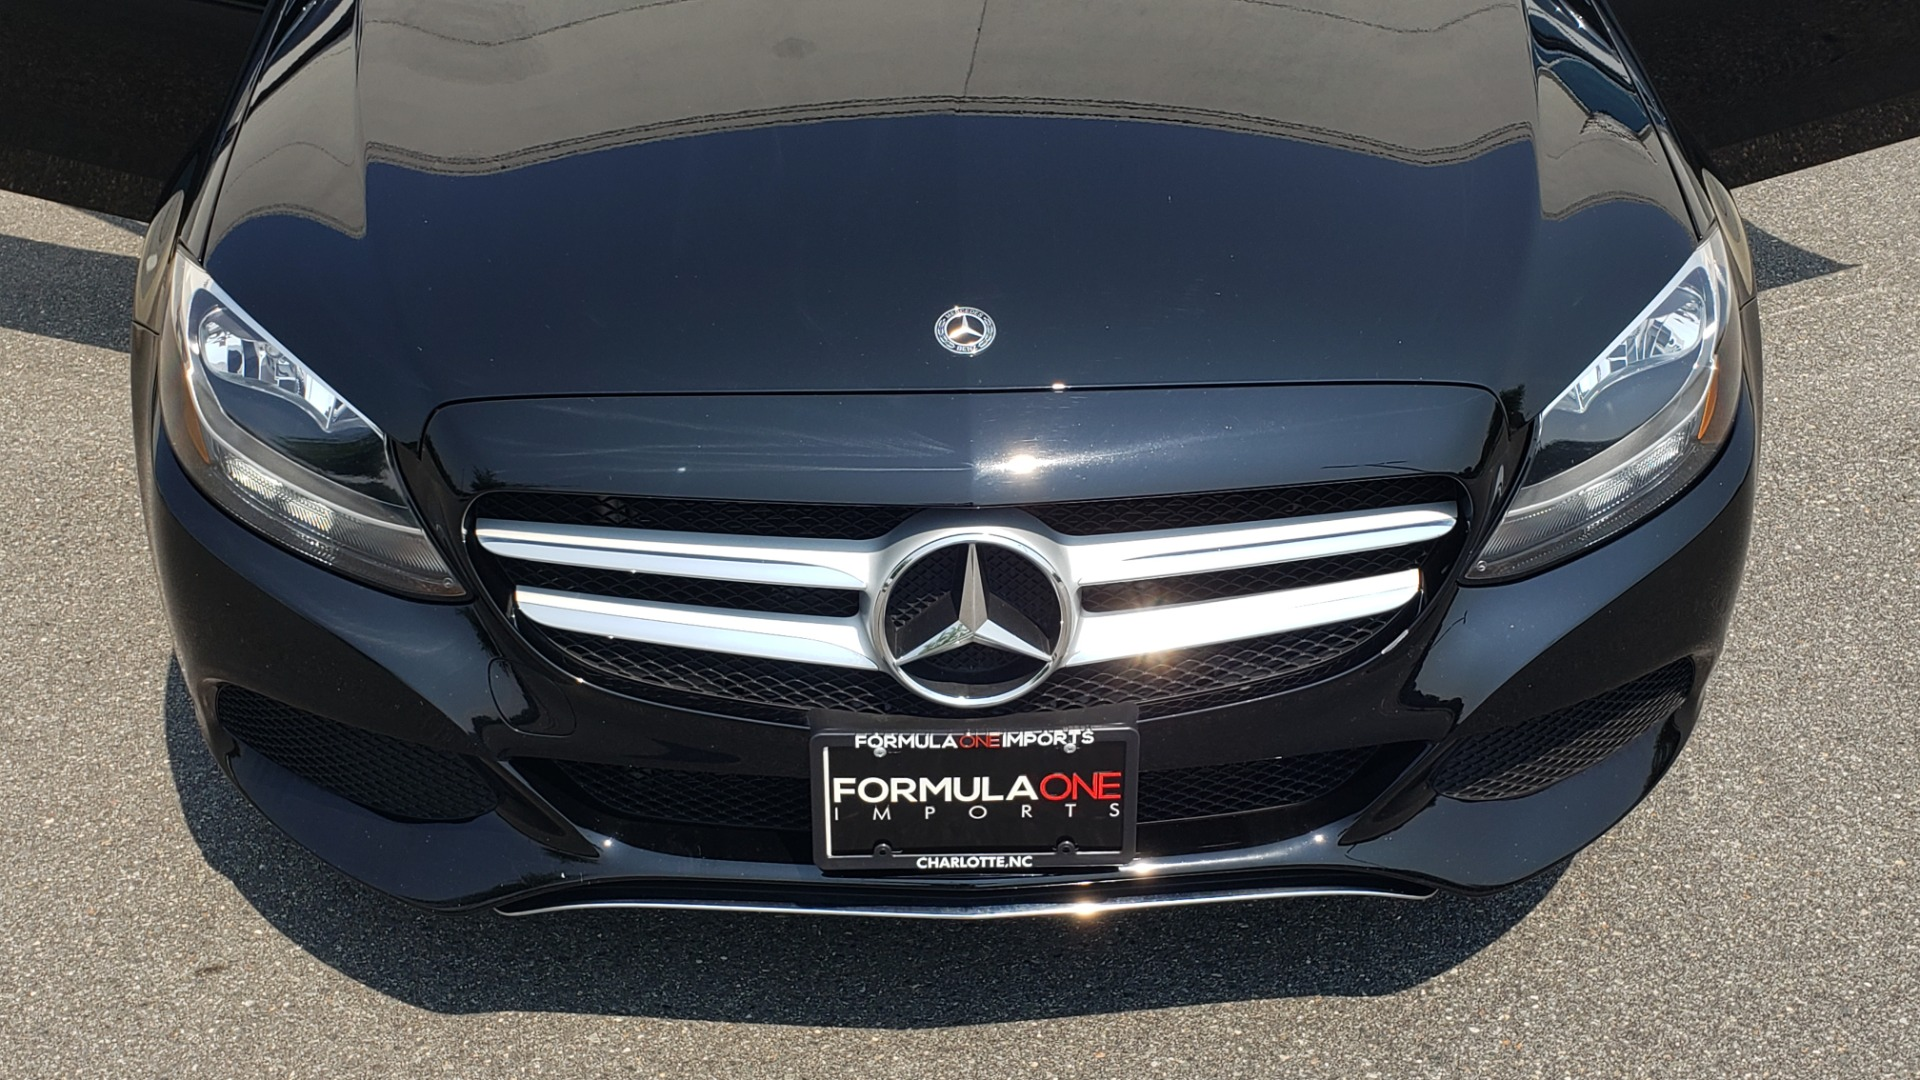 Used 2018 Mercedes-Benz C-CLASS C 300 4MATIC / PREMIUM / MULTIMEDIA / NAV / PANO-ROOF / BURMESTER for sale $30,495 at Formula Imports in Charlotte NC 28227 22